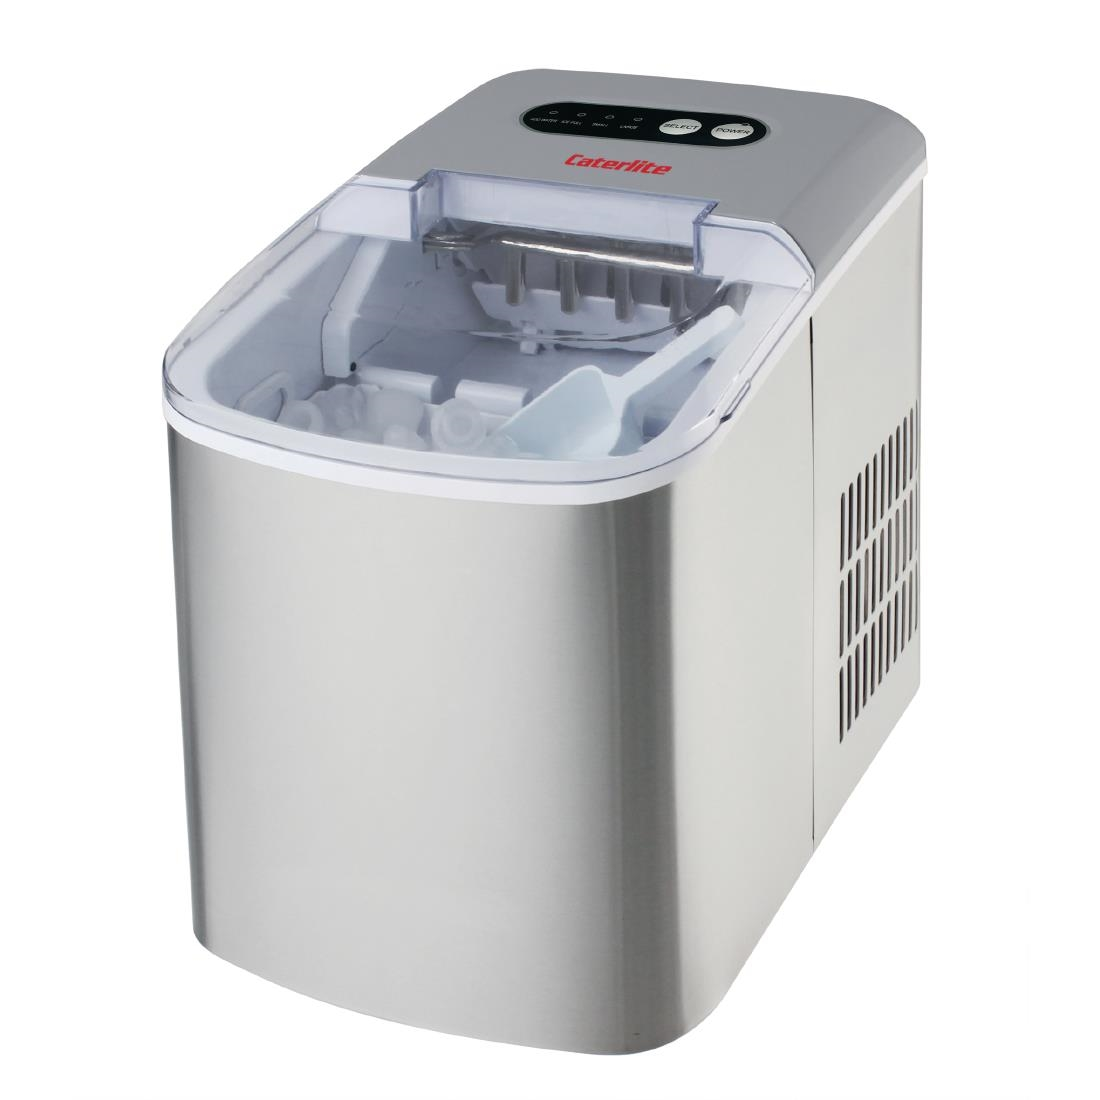 Image of Caterlite Countertop Manual Fill Ice Machine